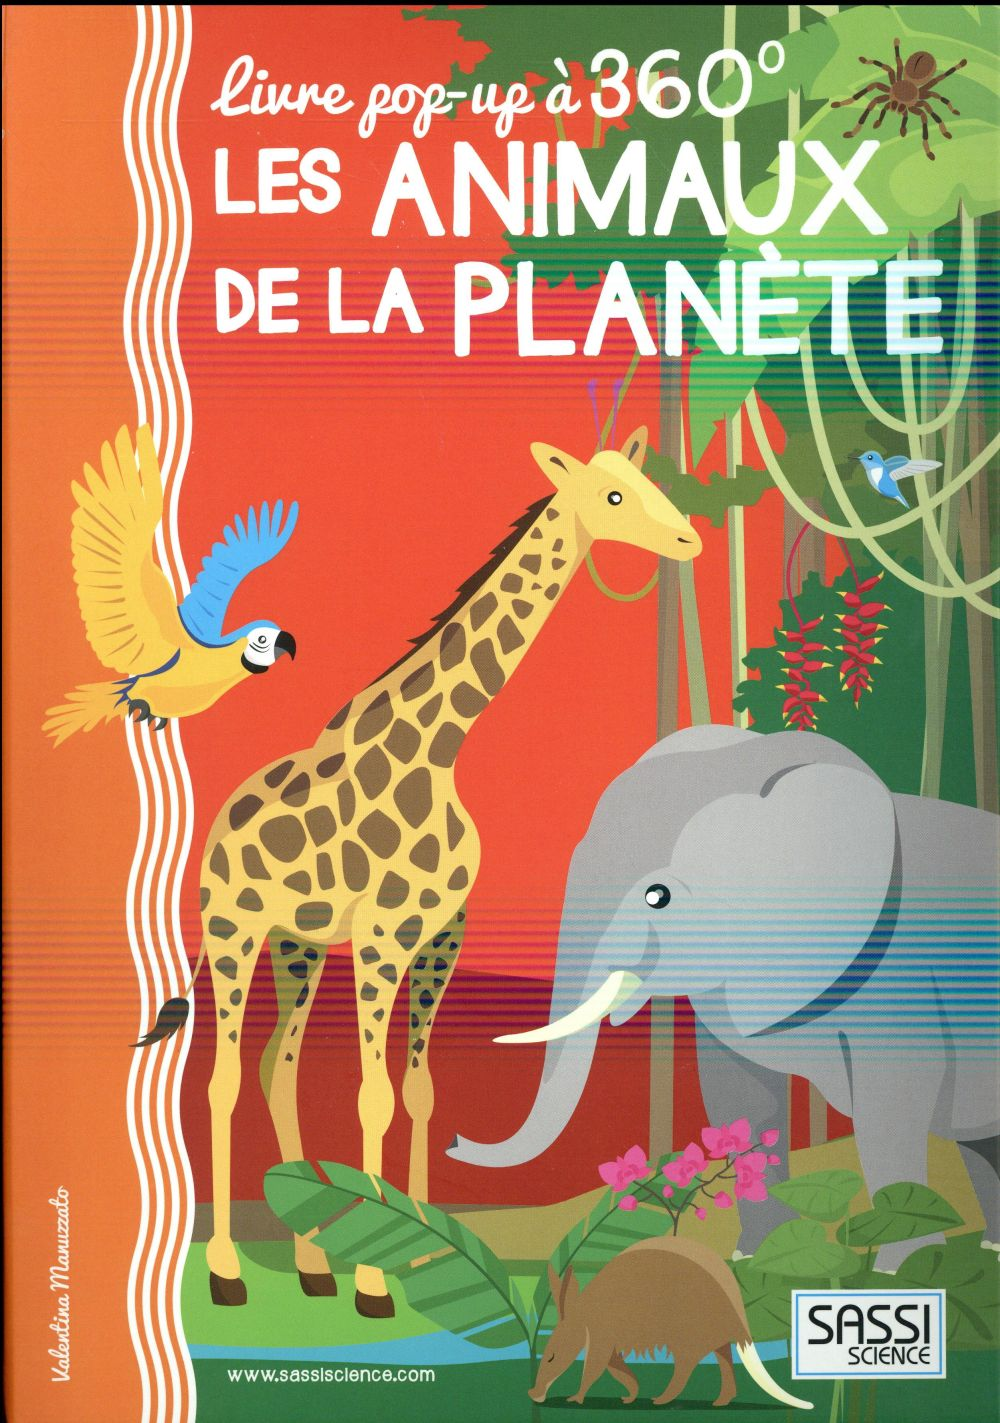 POP UP 360 LES ANIMAUX DE LA PLANETE